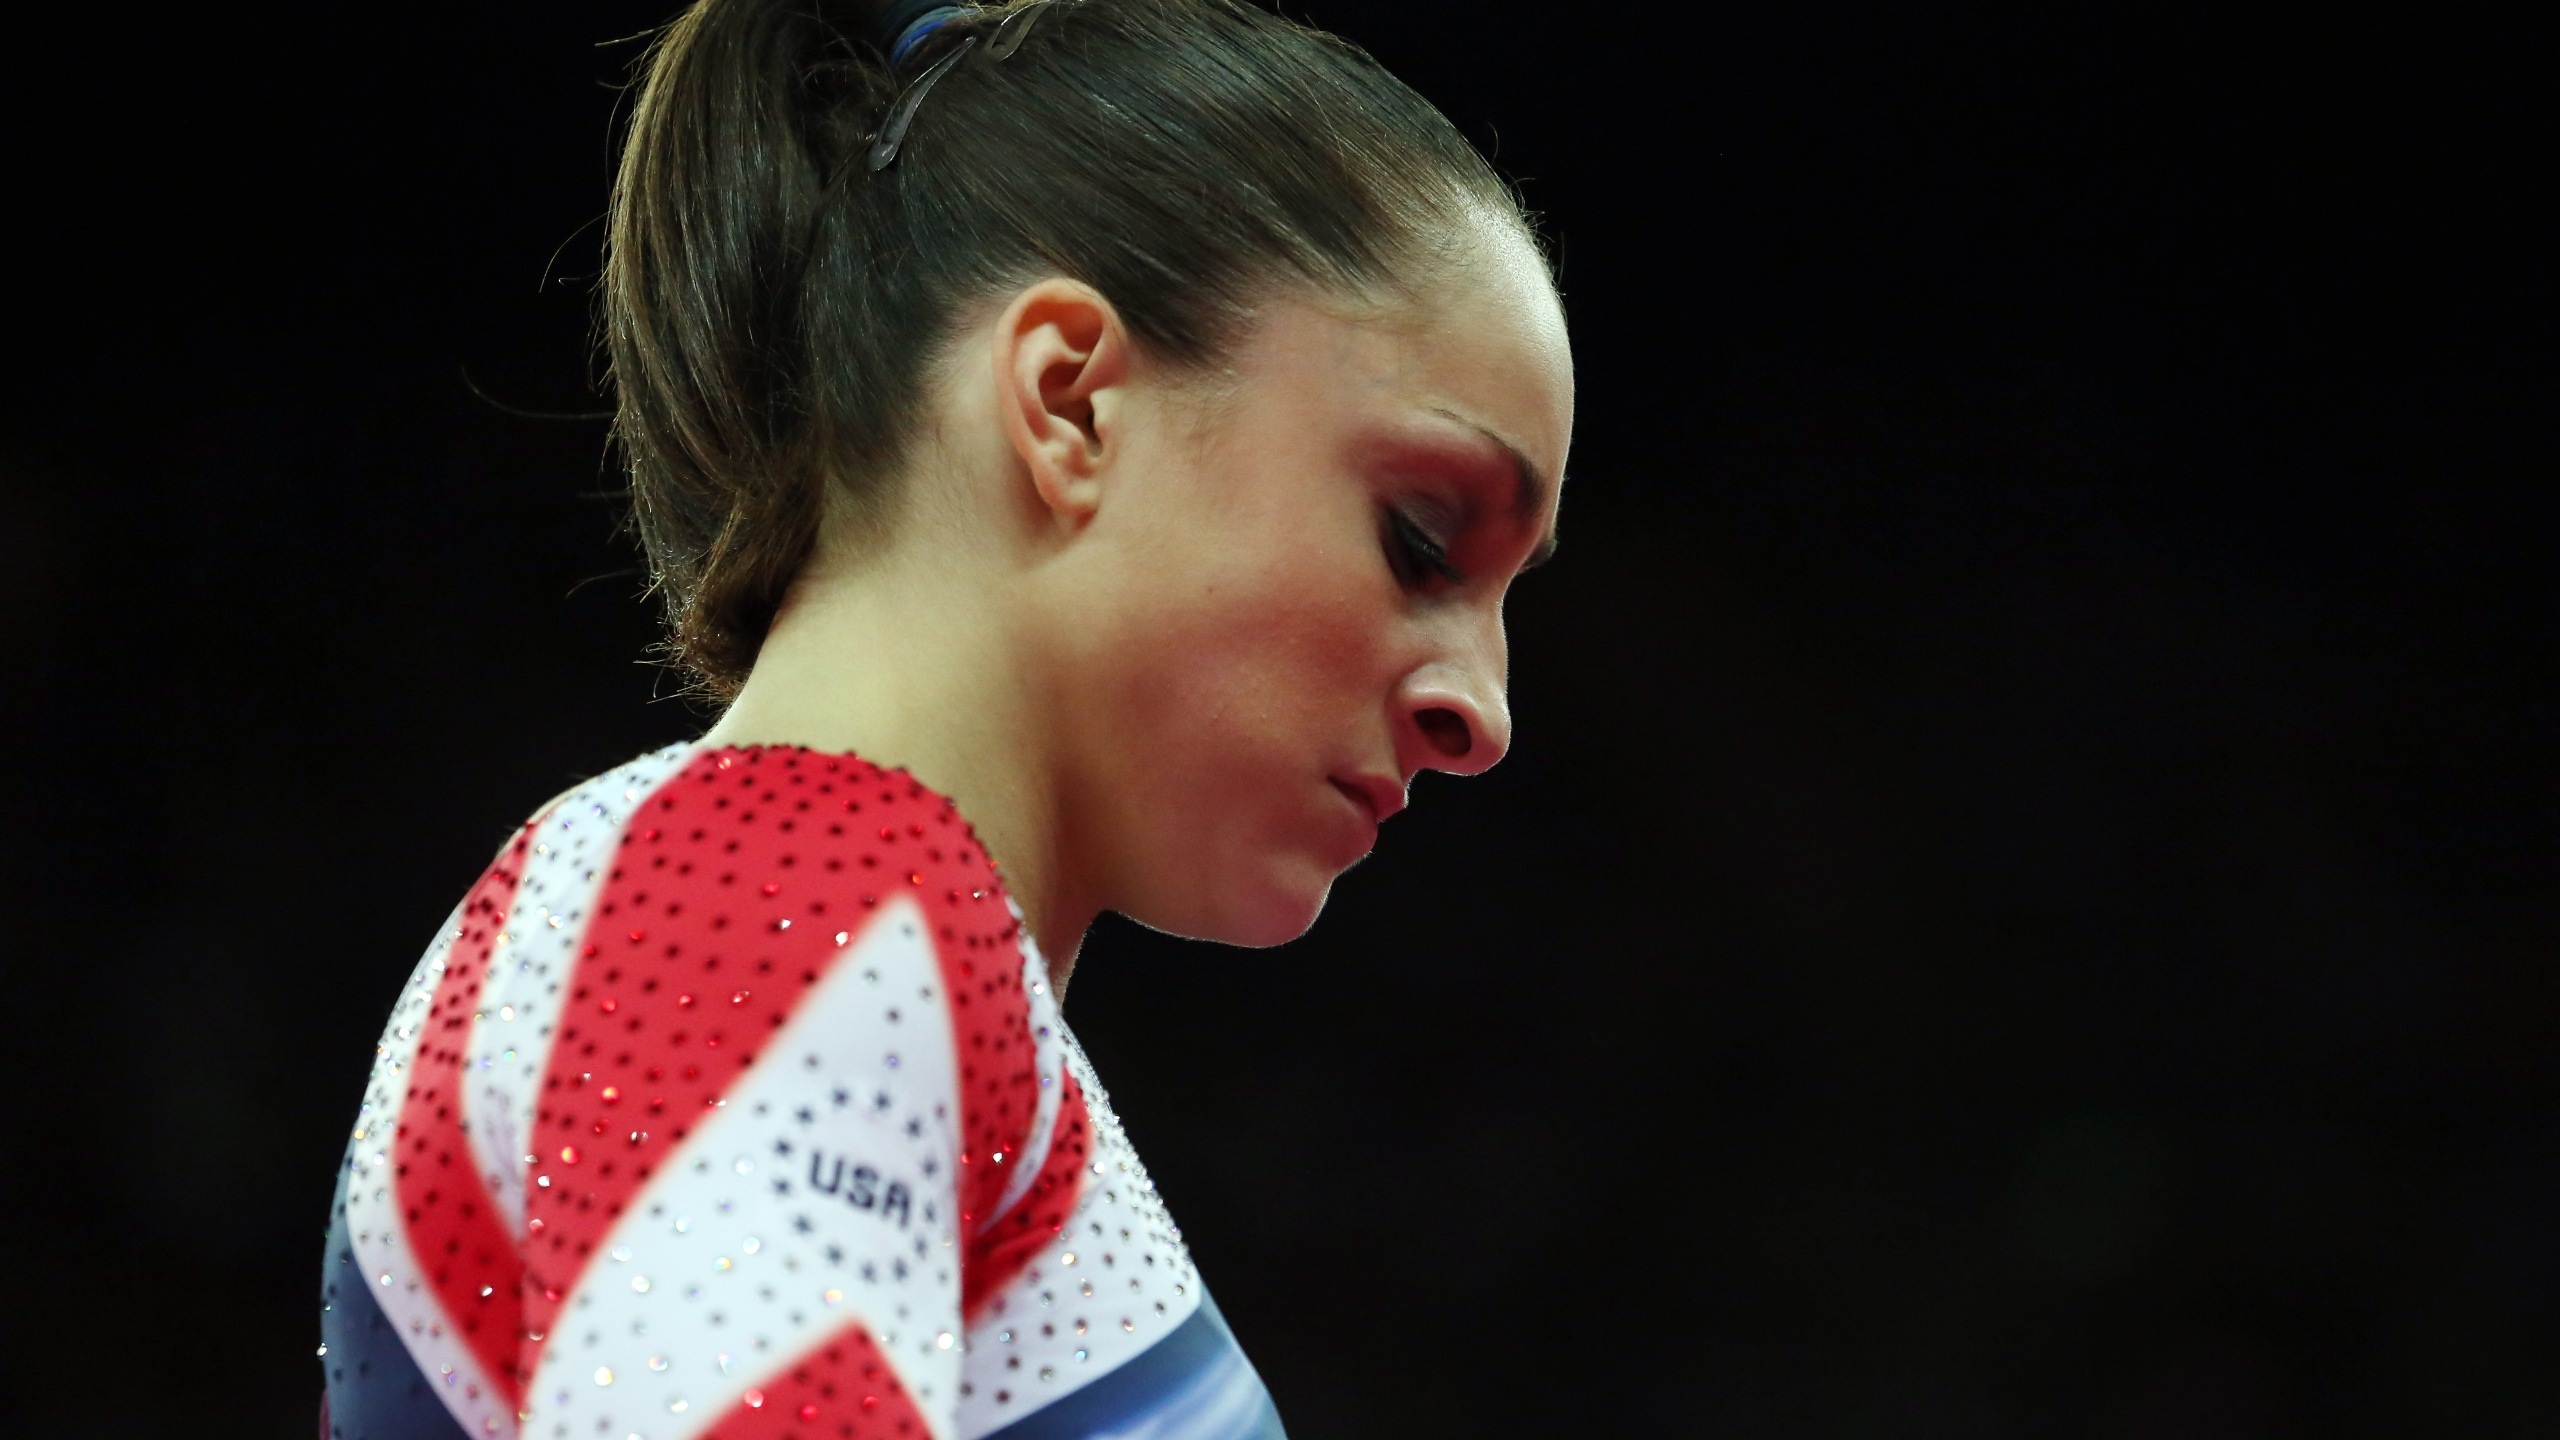 Jordyn Wieber of the United States of America reacts after she competes during the Artistic Gymnastics Women's Floor Exercise final on Day 11 of the London 2012 Olympic Games at North Greenwich Arena on August 7, 2012 in London, England. (Credit: Ronald Martinez/Getty Images)